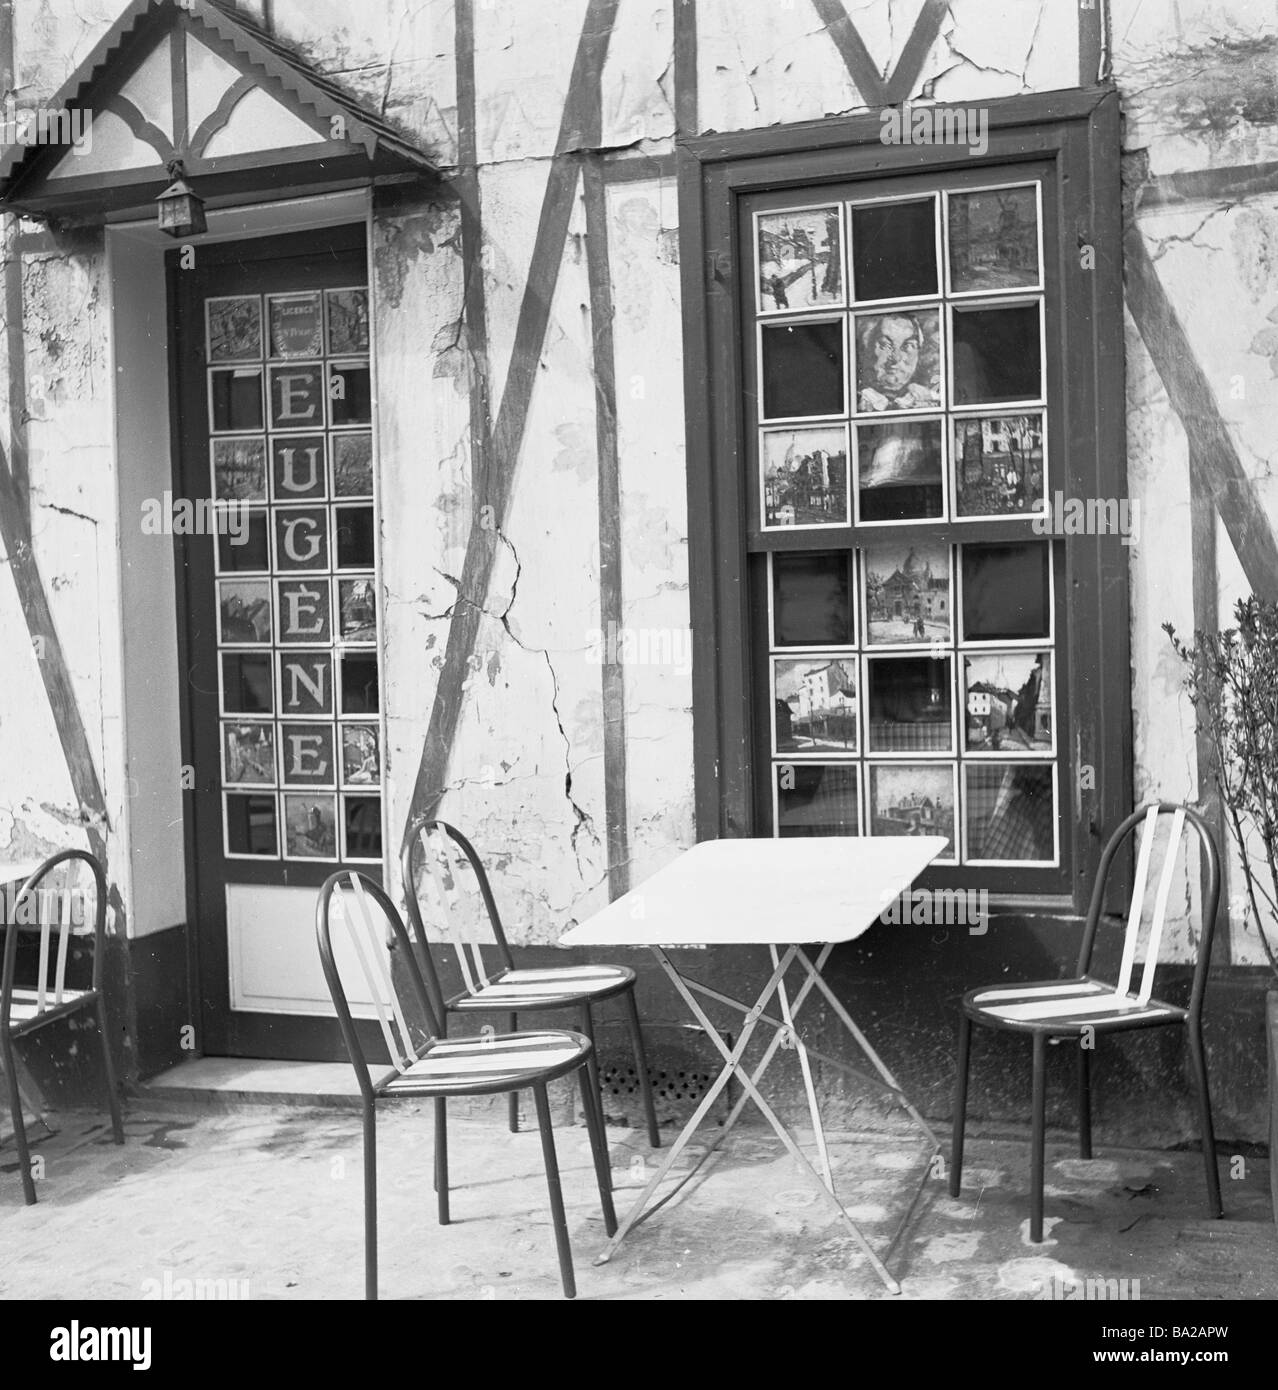 Exterior of Cafe Eugene in Place du Tertre Paris showing paintings in panes of window and door Paris France 1950 - Stock Image